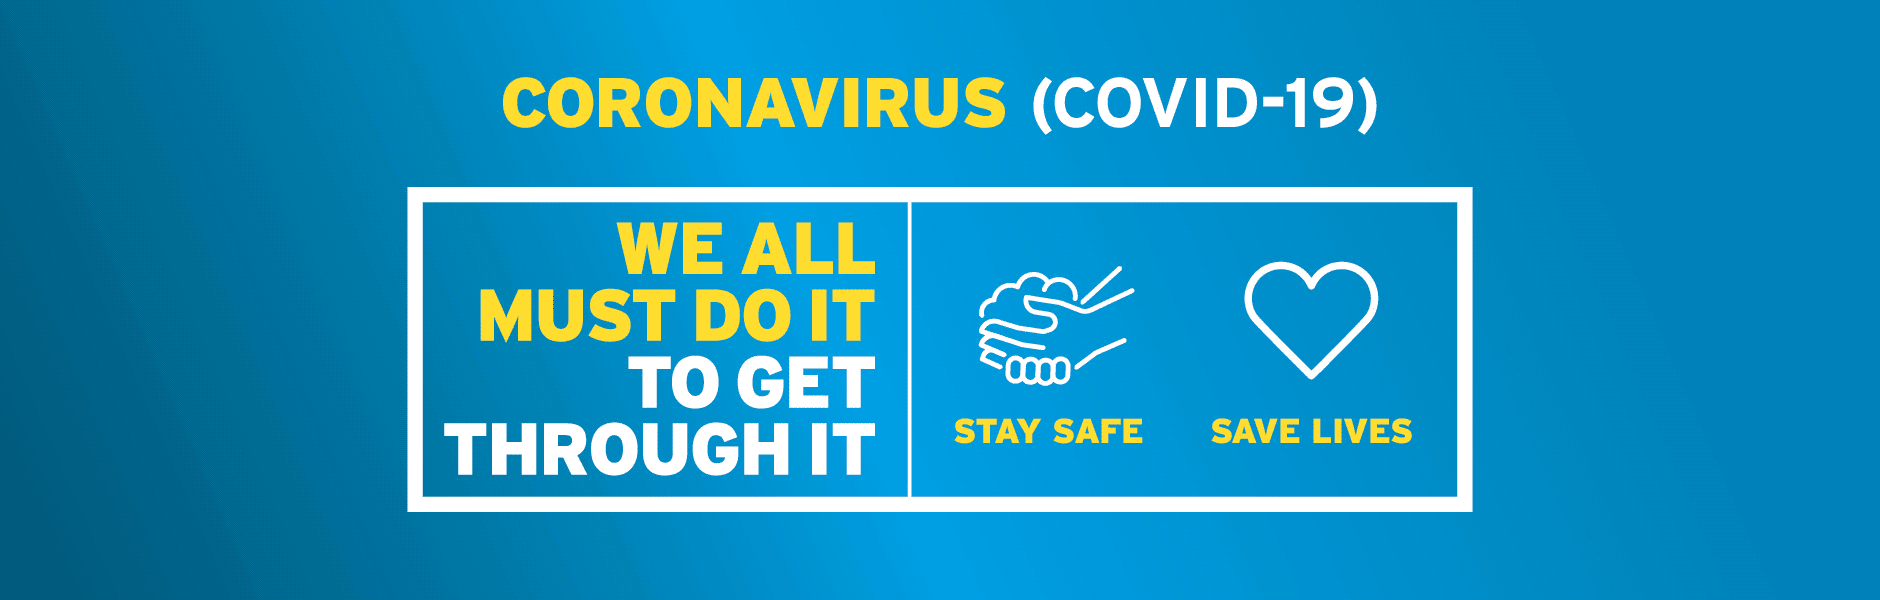 Coronavirus (COVID-19) - we all must do it to get through it. Stay safe. Save lives.